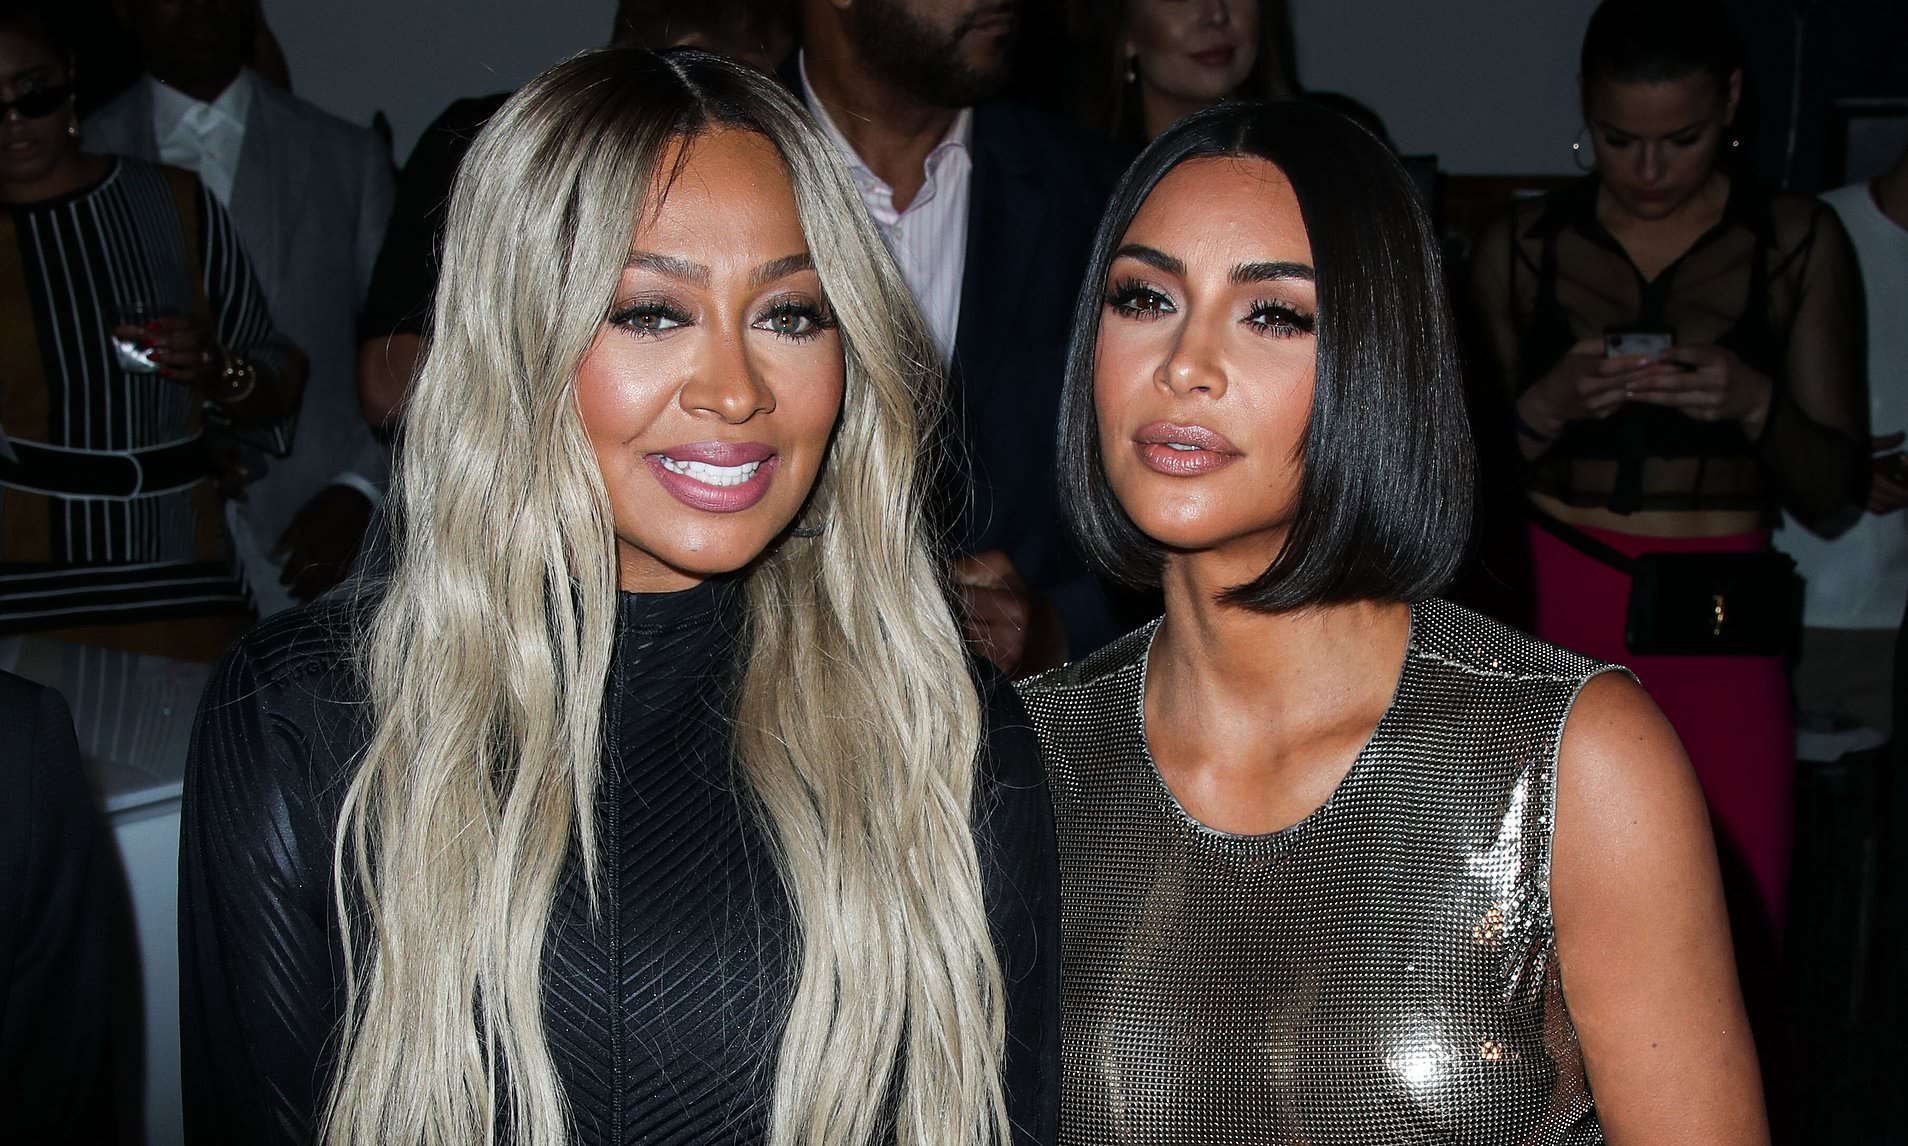 KUWTK: Kim Kardashian and La La Anthony leaning on each other in the middle of their divorces, here's how!